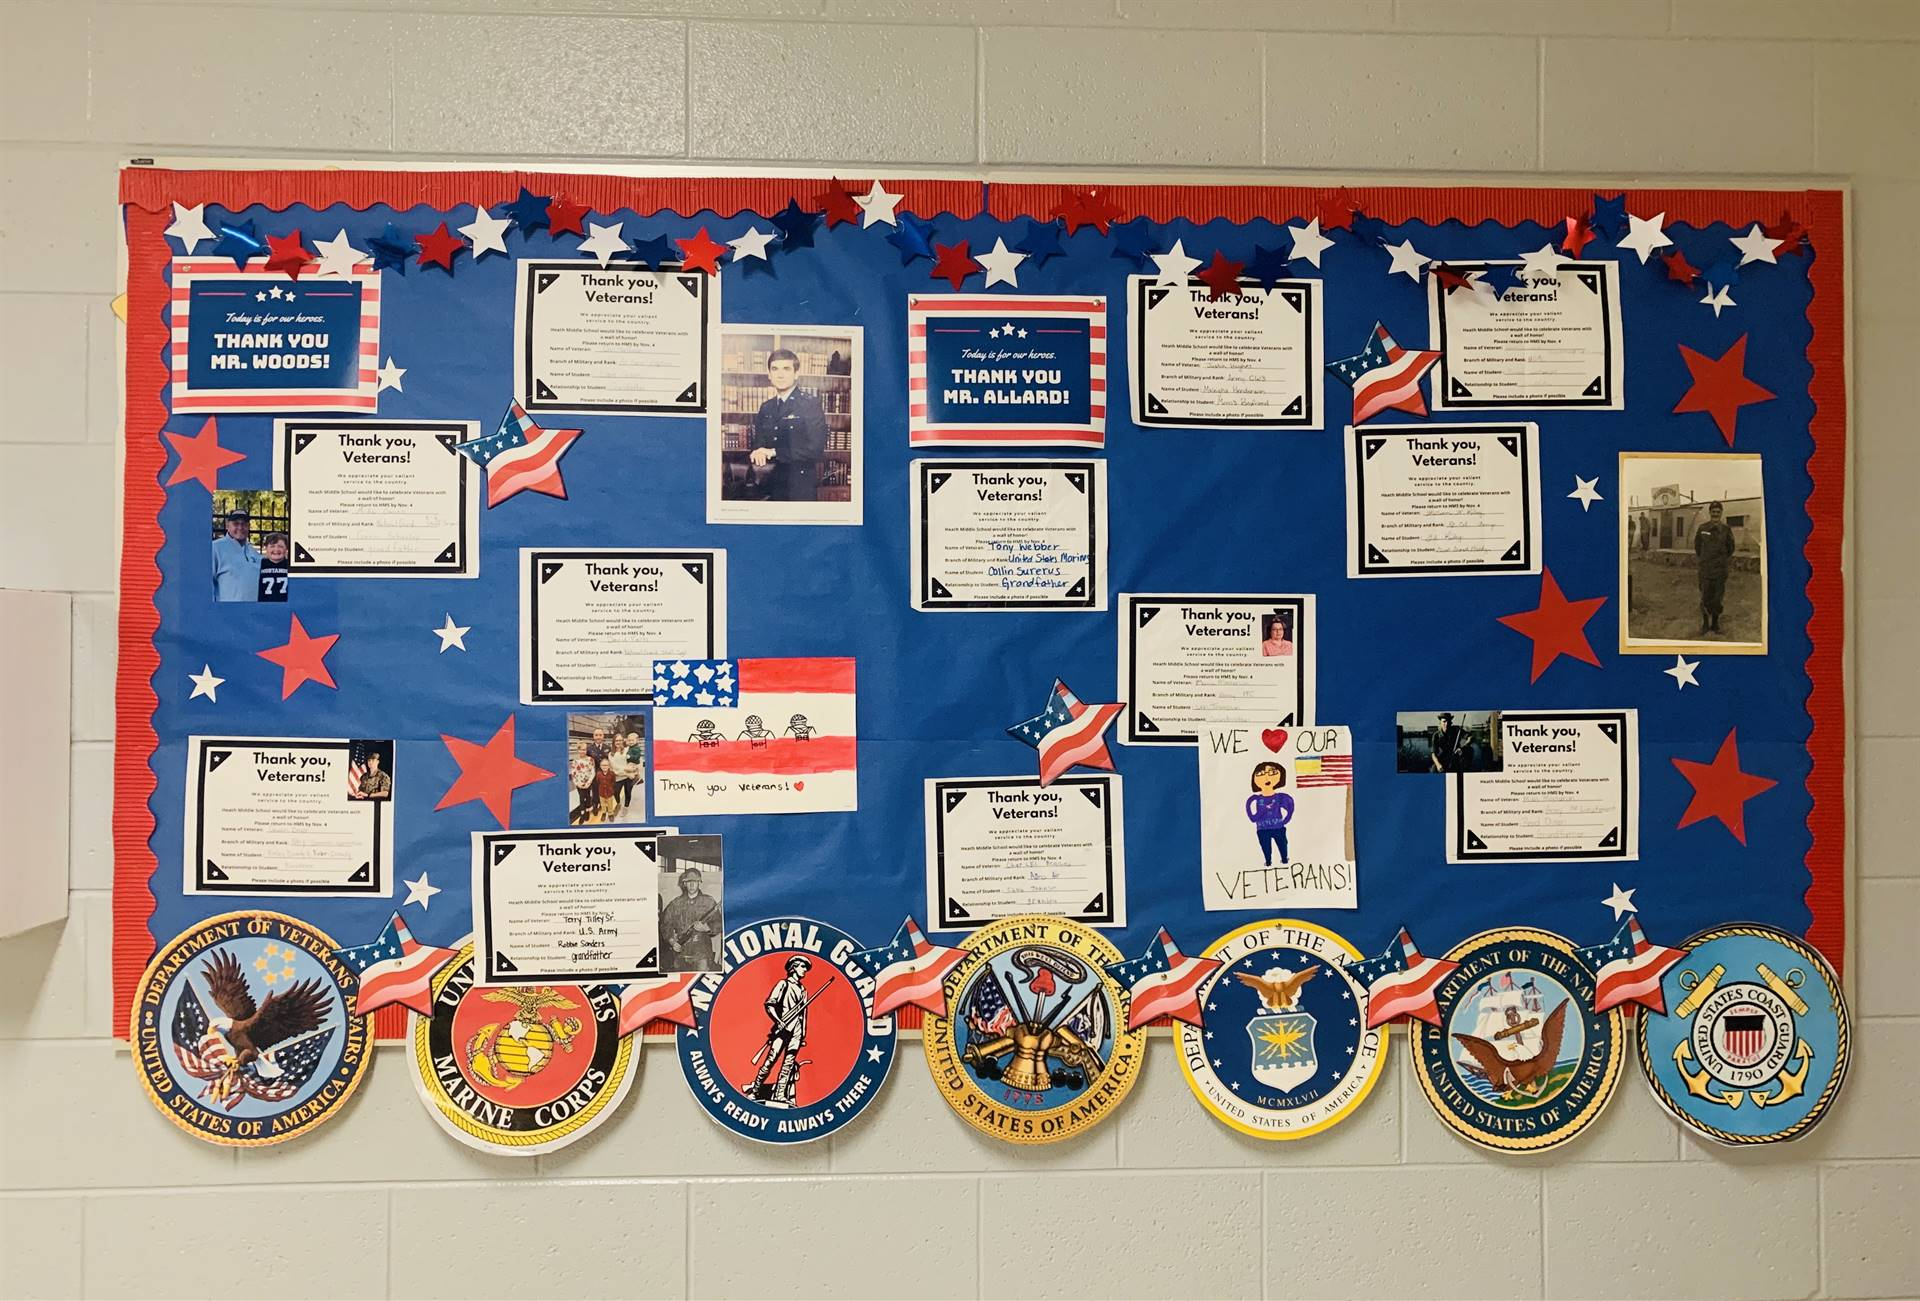 wall of honor at HMS